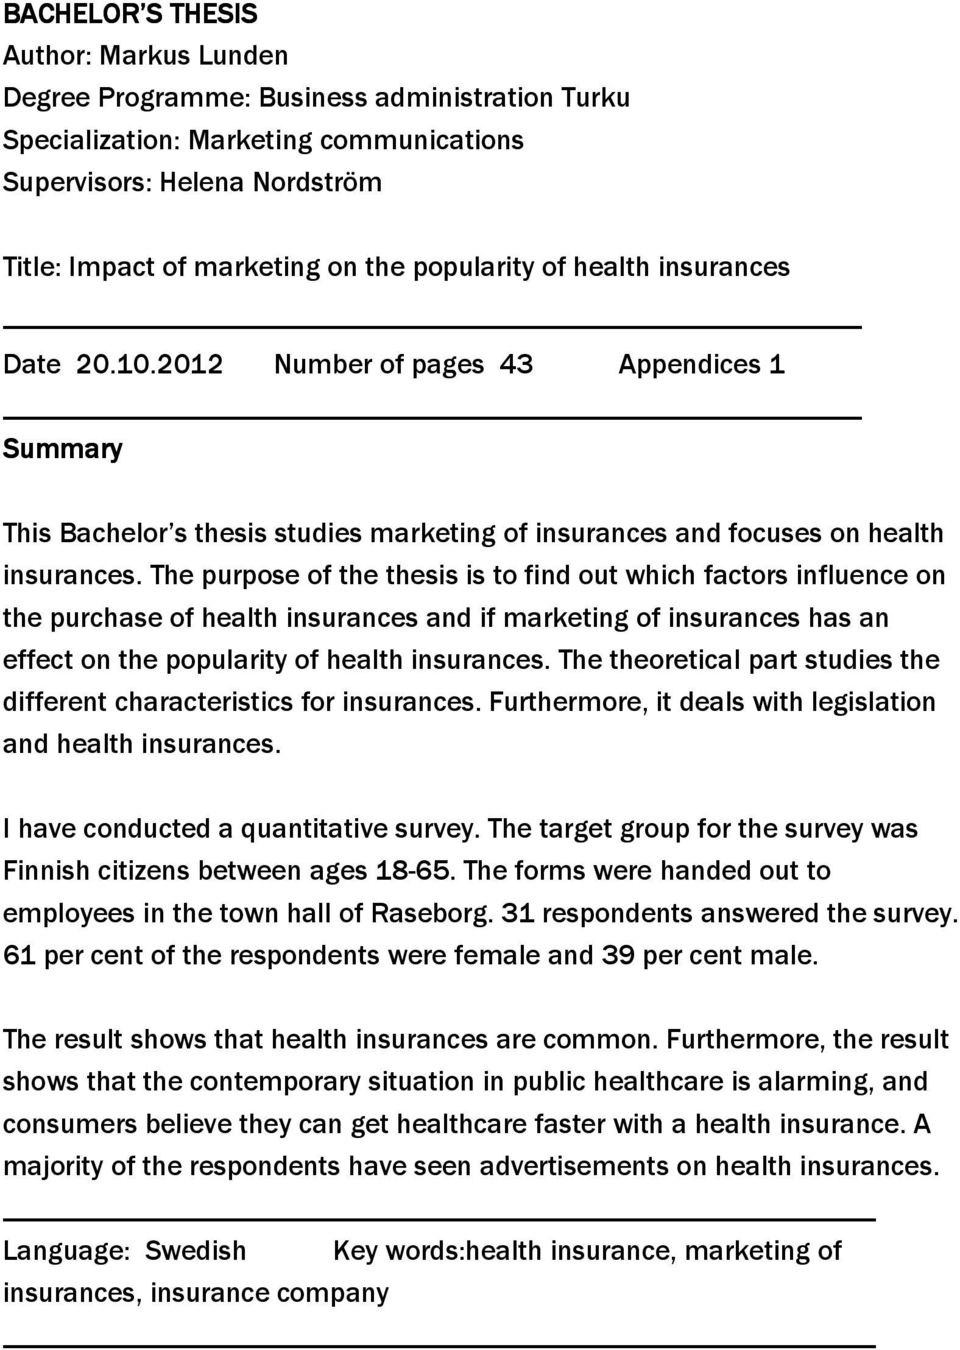 The purpose of the thesis is to find out which factors influence on the purchase of health insurances and if marketing of insurances has an effect on the popularity of health insurances.